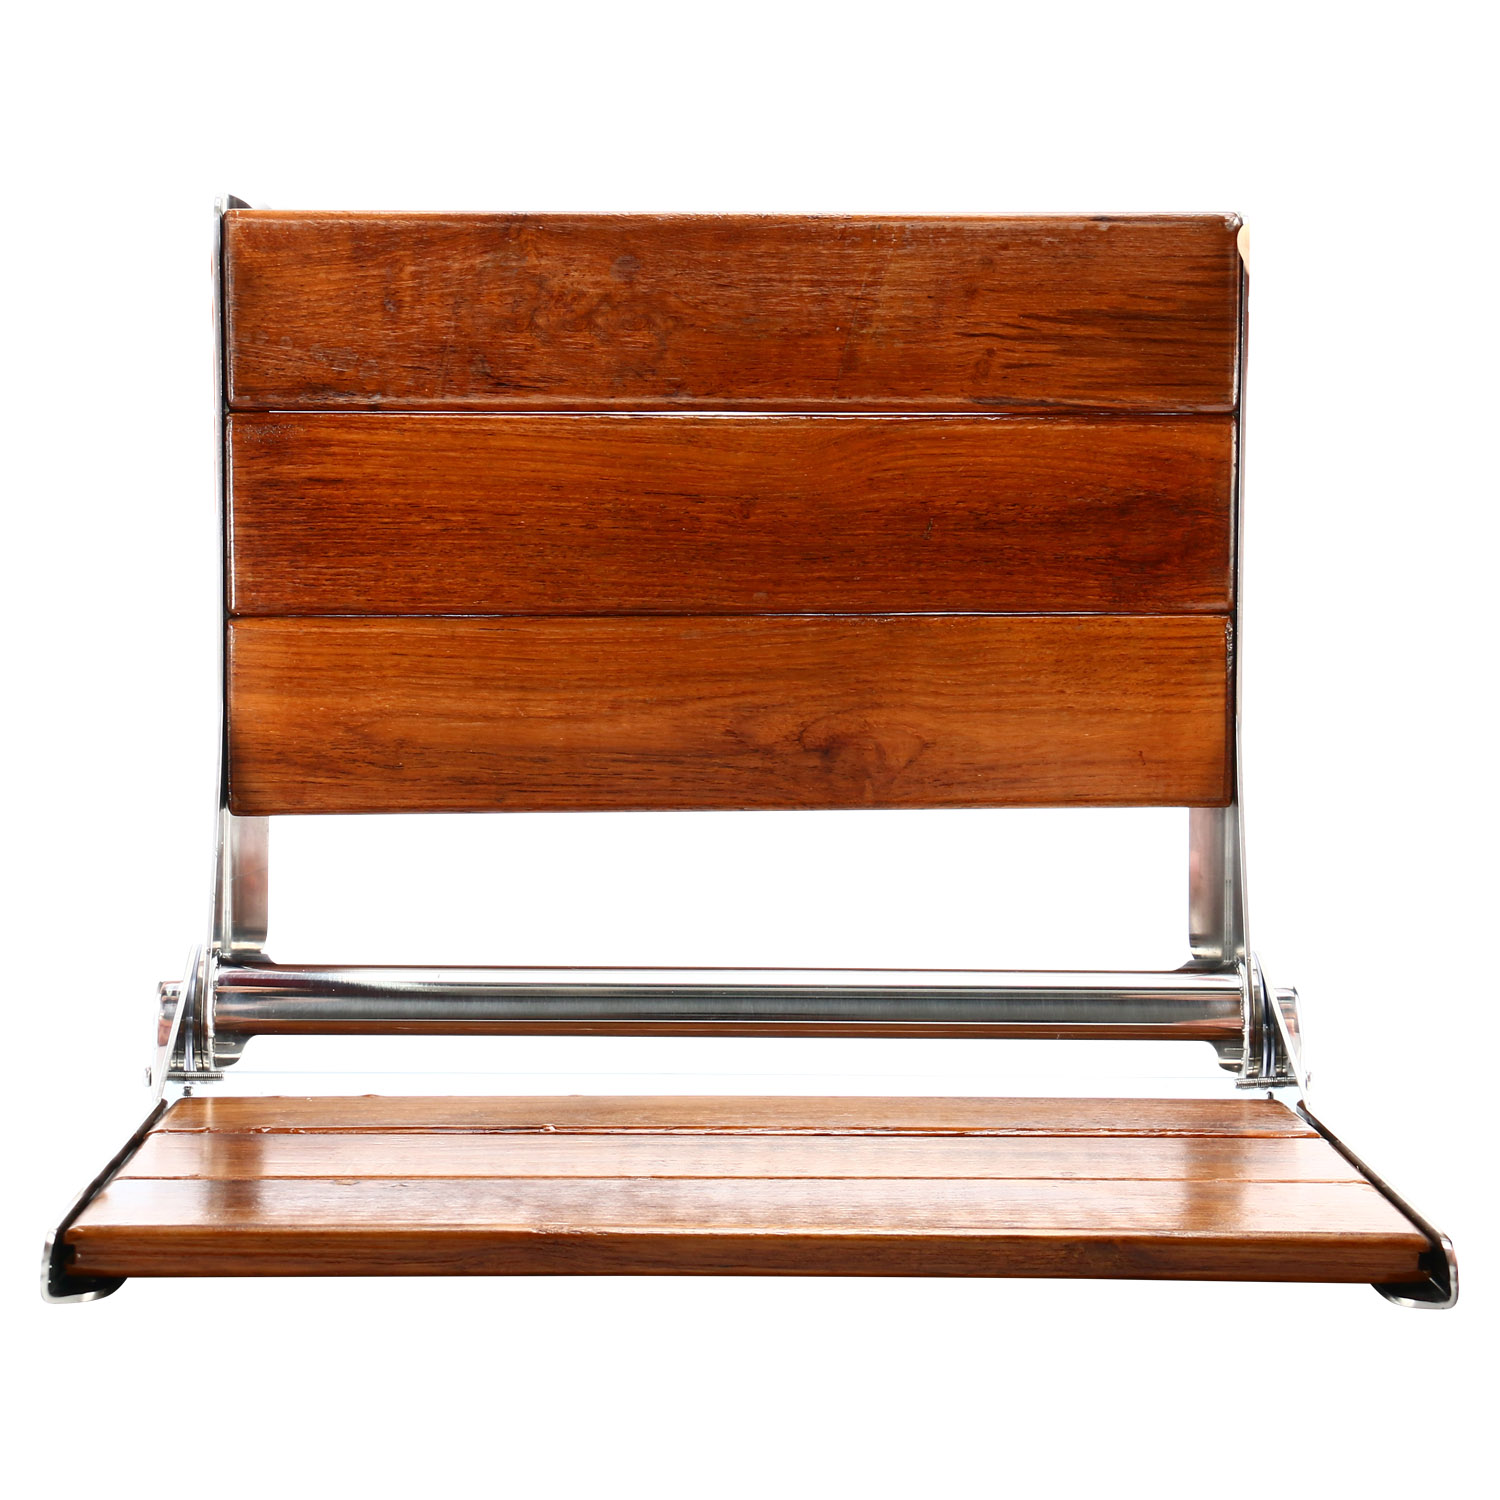 Details About 18 Folding Teak Wood Shower Bench Seat Wall Mount Chair Foldable Shower Seat Us